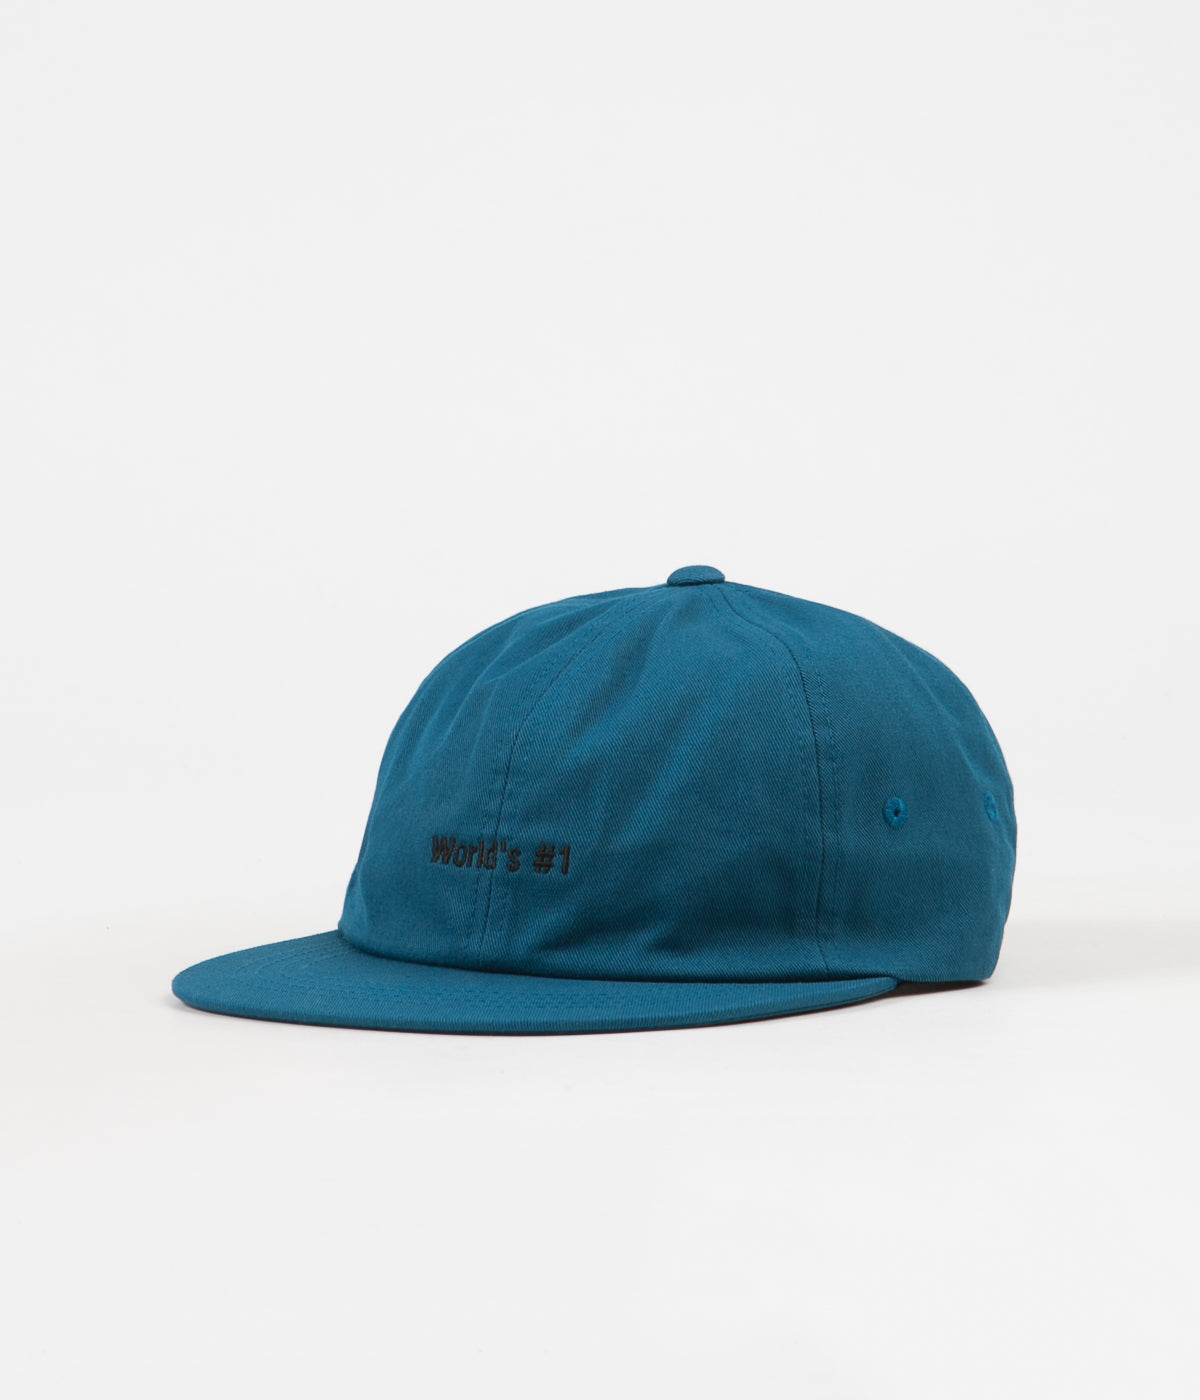 Vans WN1 Jockey Cap - Corsair